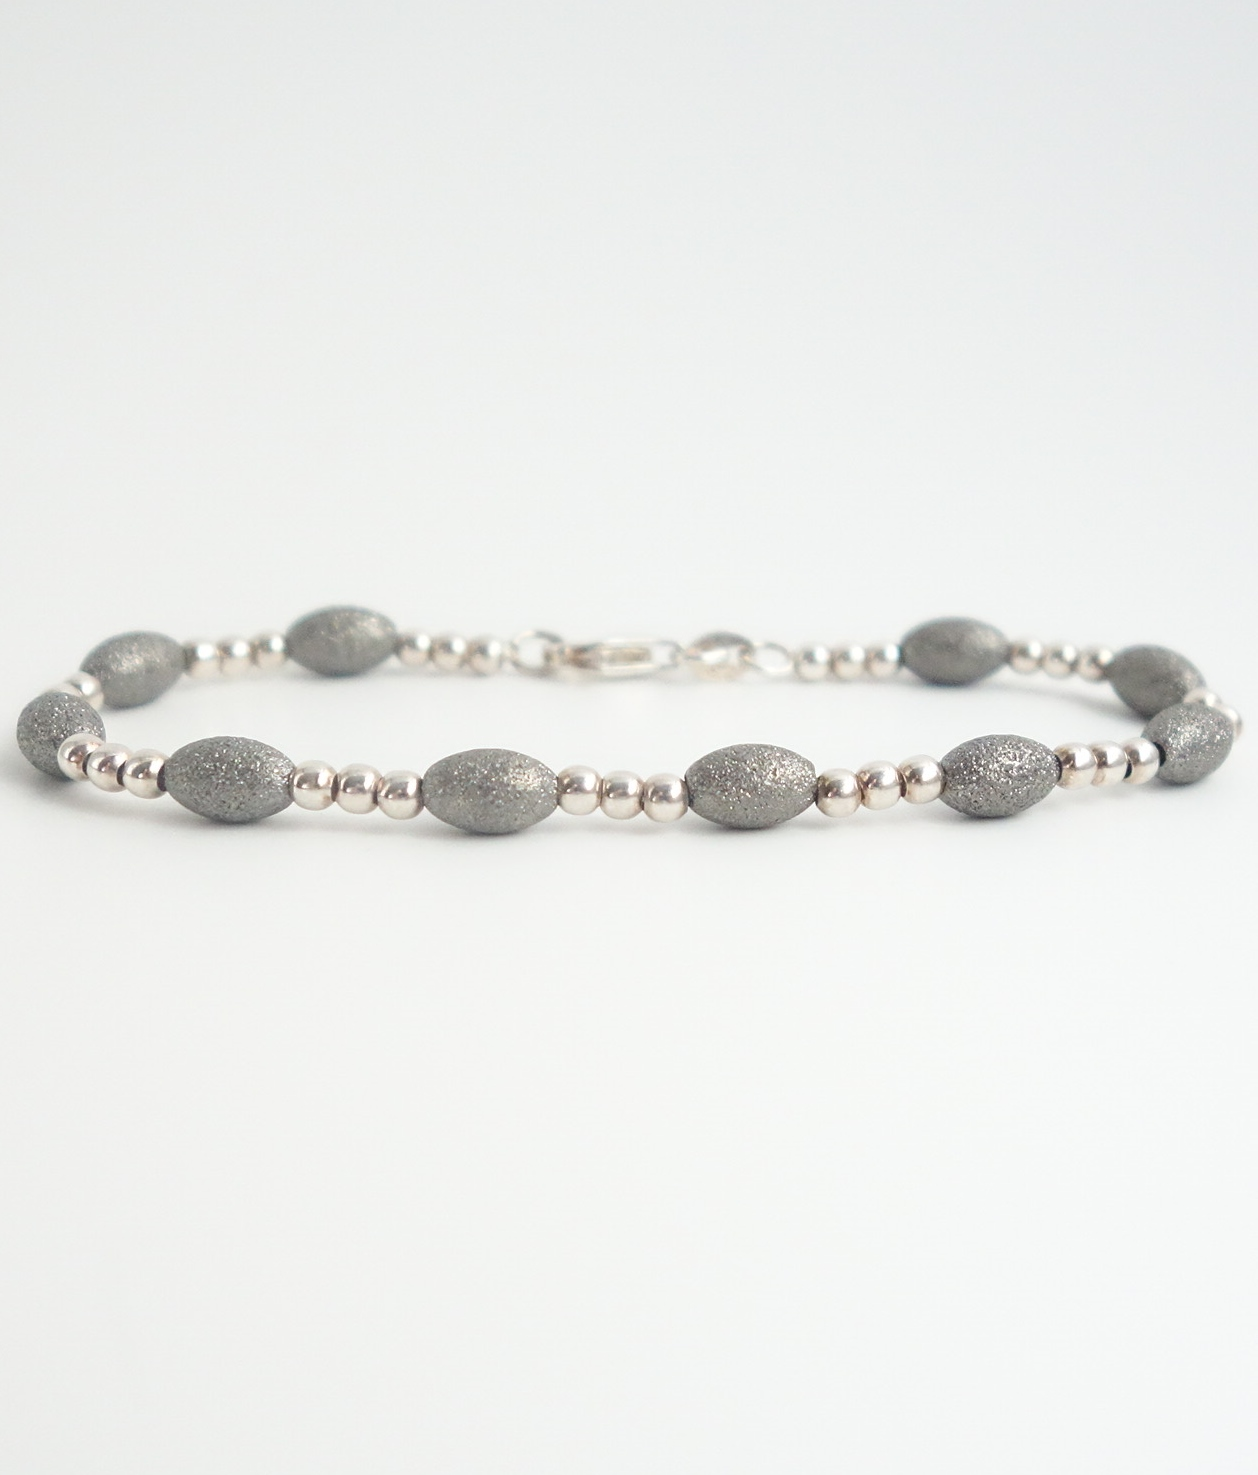 sterling silver beaded bracelet with dark grey sandblasted beads